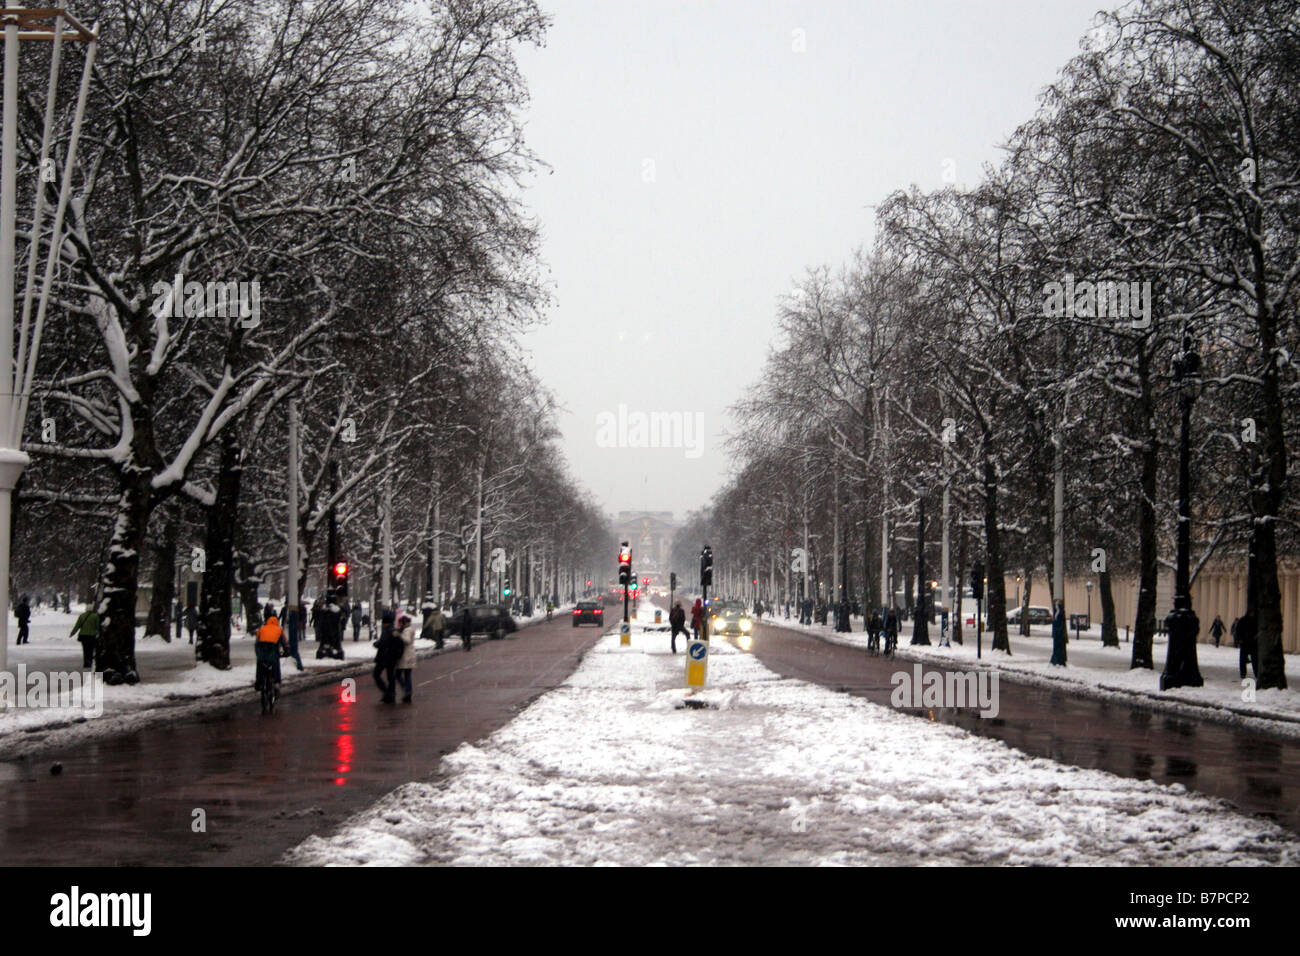 View of the Mall looking towards Buckingham Palace - Stock Image